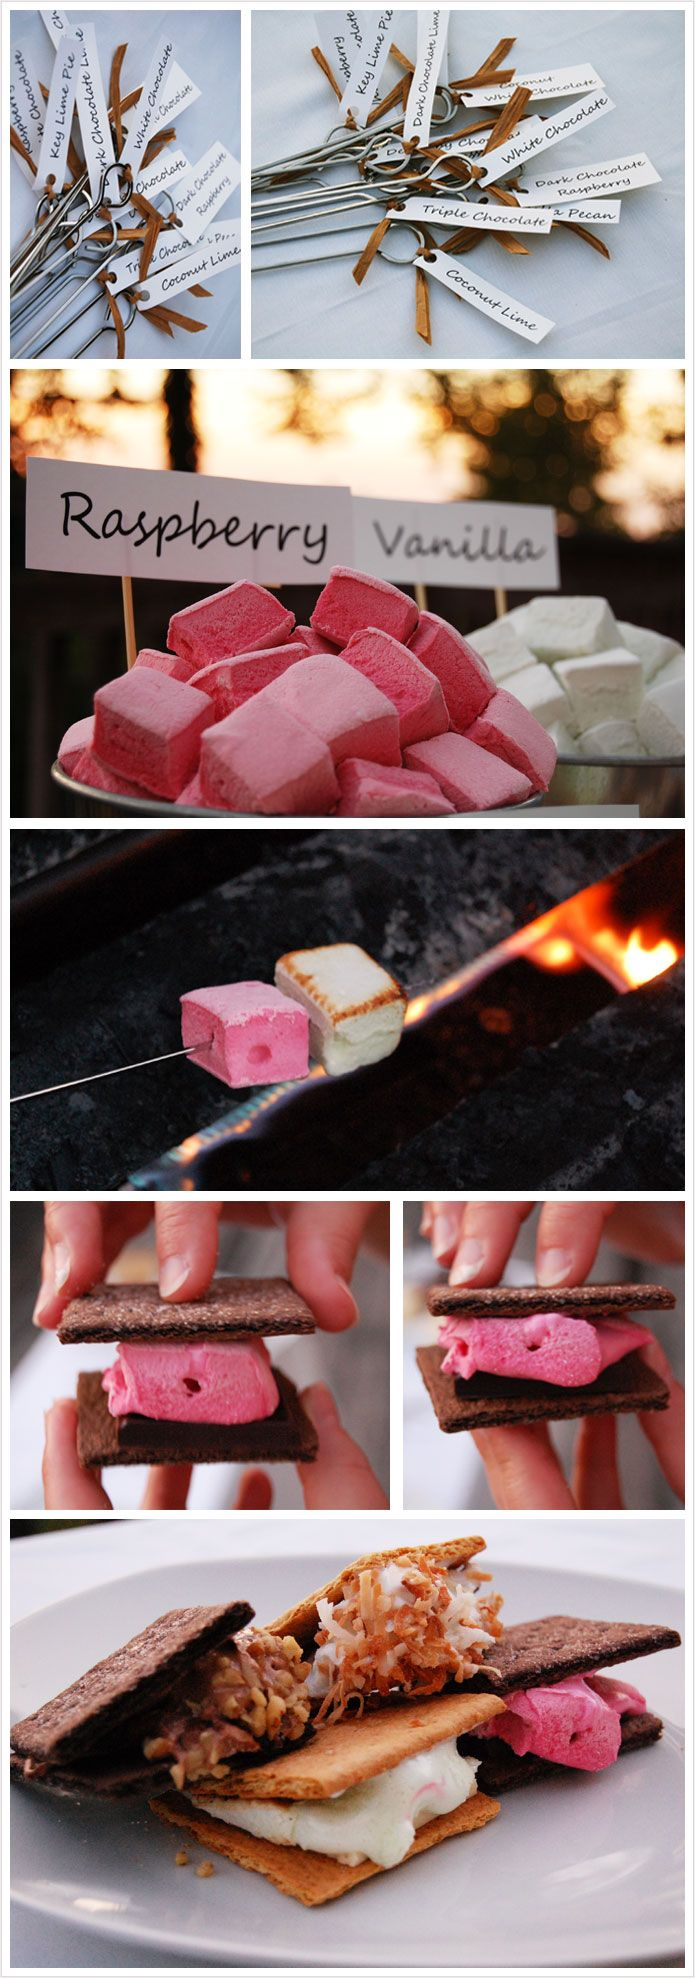 Gourmet S'mores Table, could totally do this for a party since I have an outdoor fire pit!